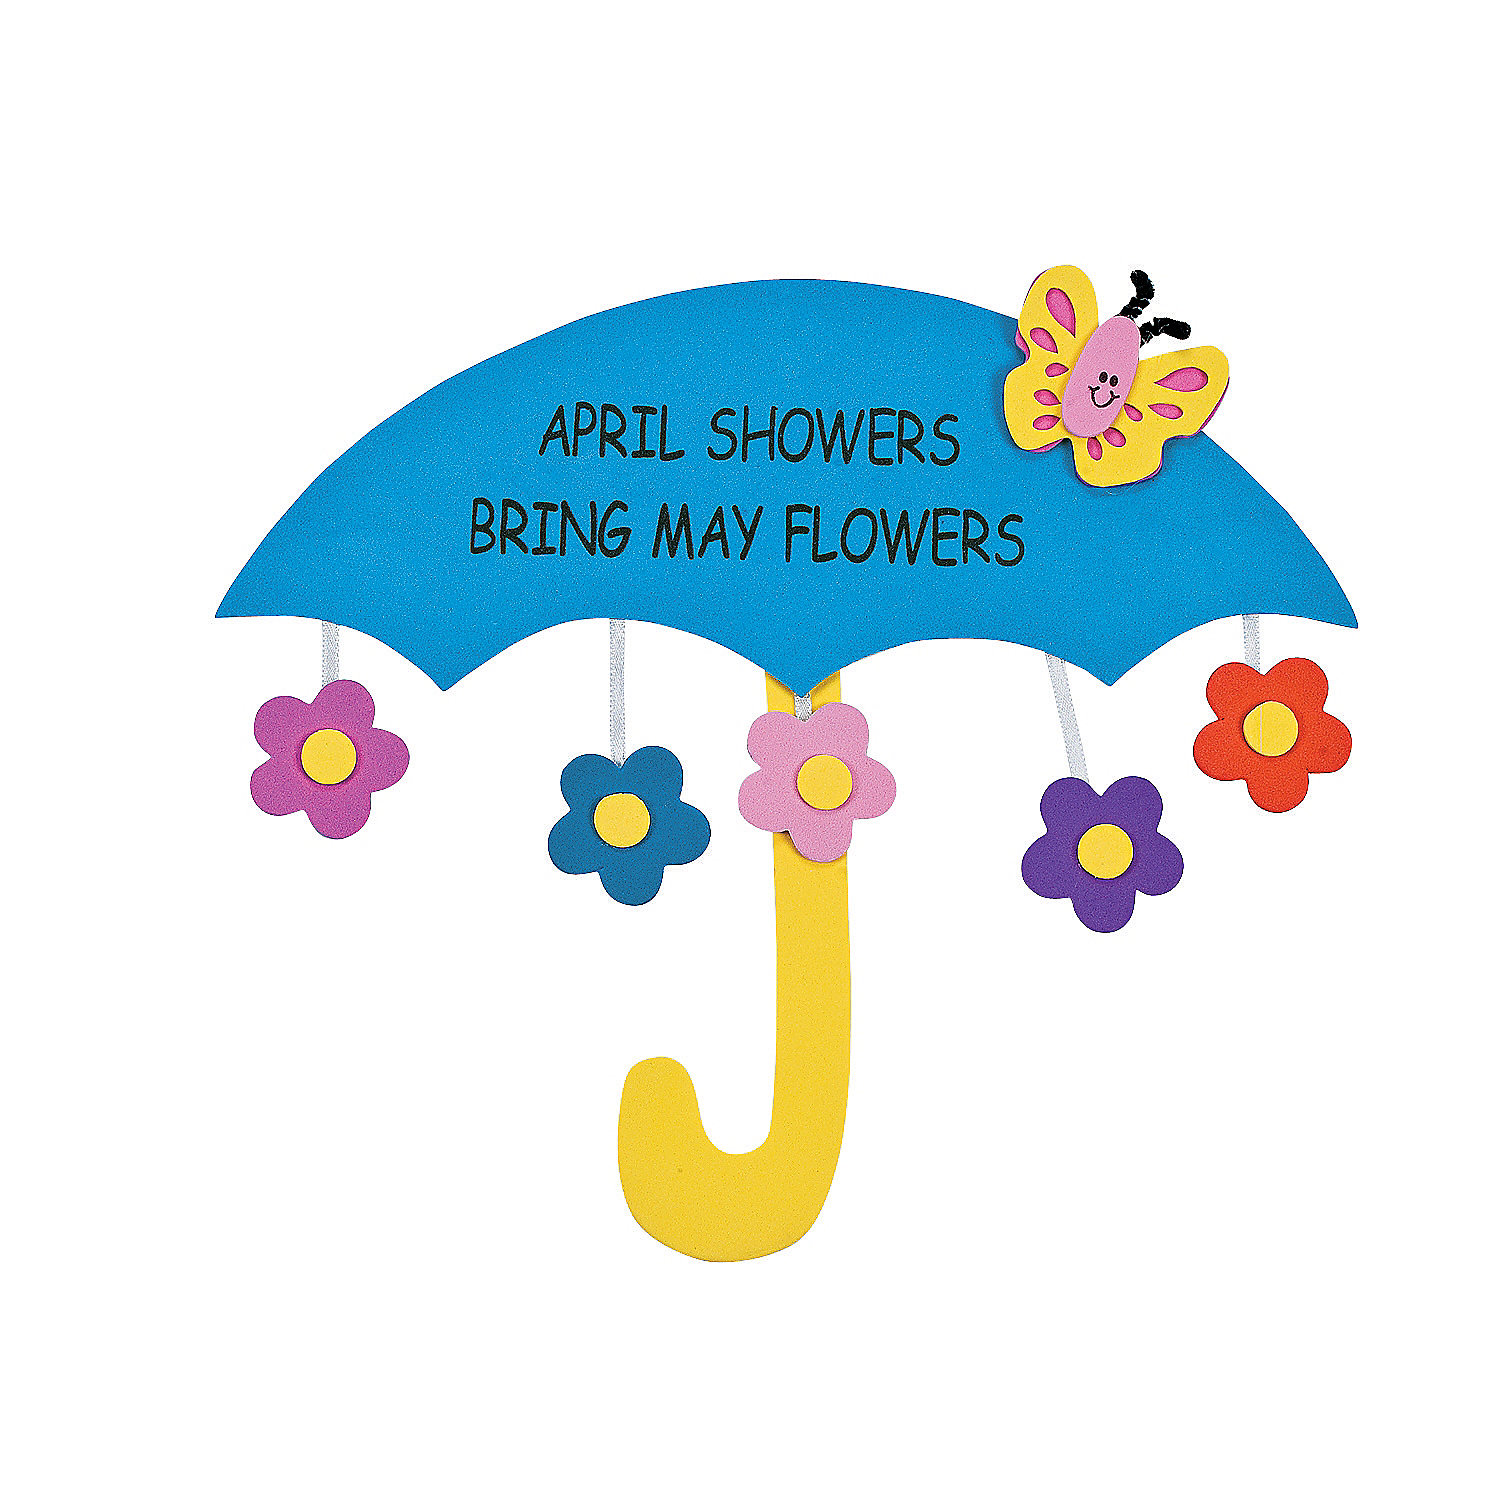 April showers bring may flowers clipart banner black and white stock April showers bring may flowers clip art - April Showers Bring May ... banner black and white stock